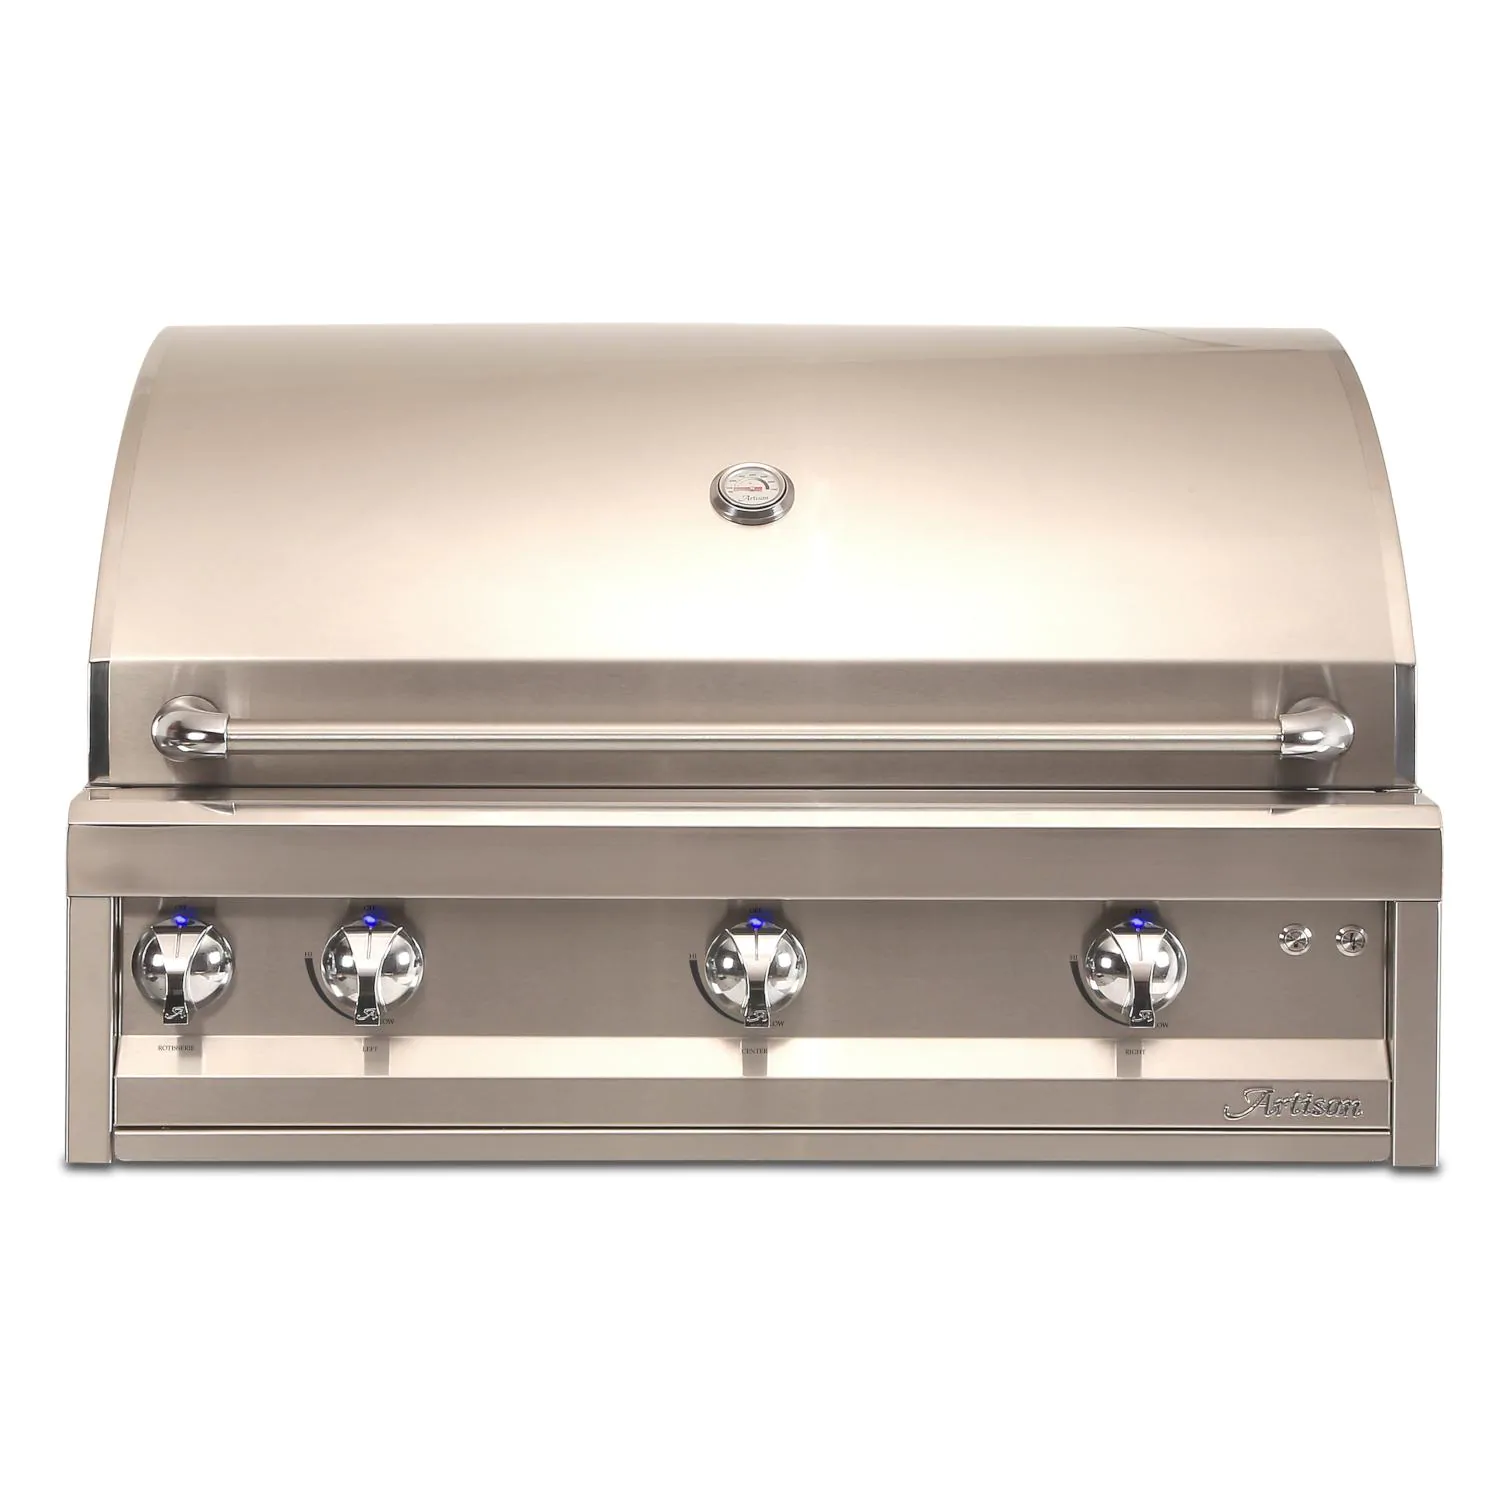 """Artisan Professional 36"""" 3-Burner Built-In Propane Gas Grill With Rotisserie - ARTP-36-LP"""